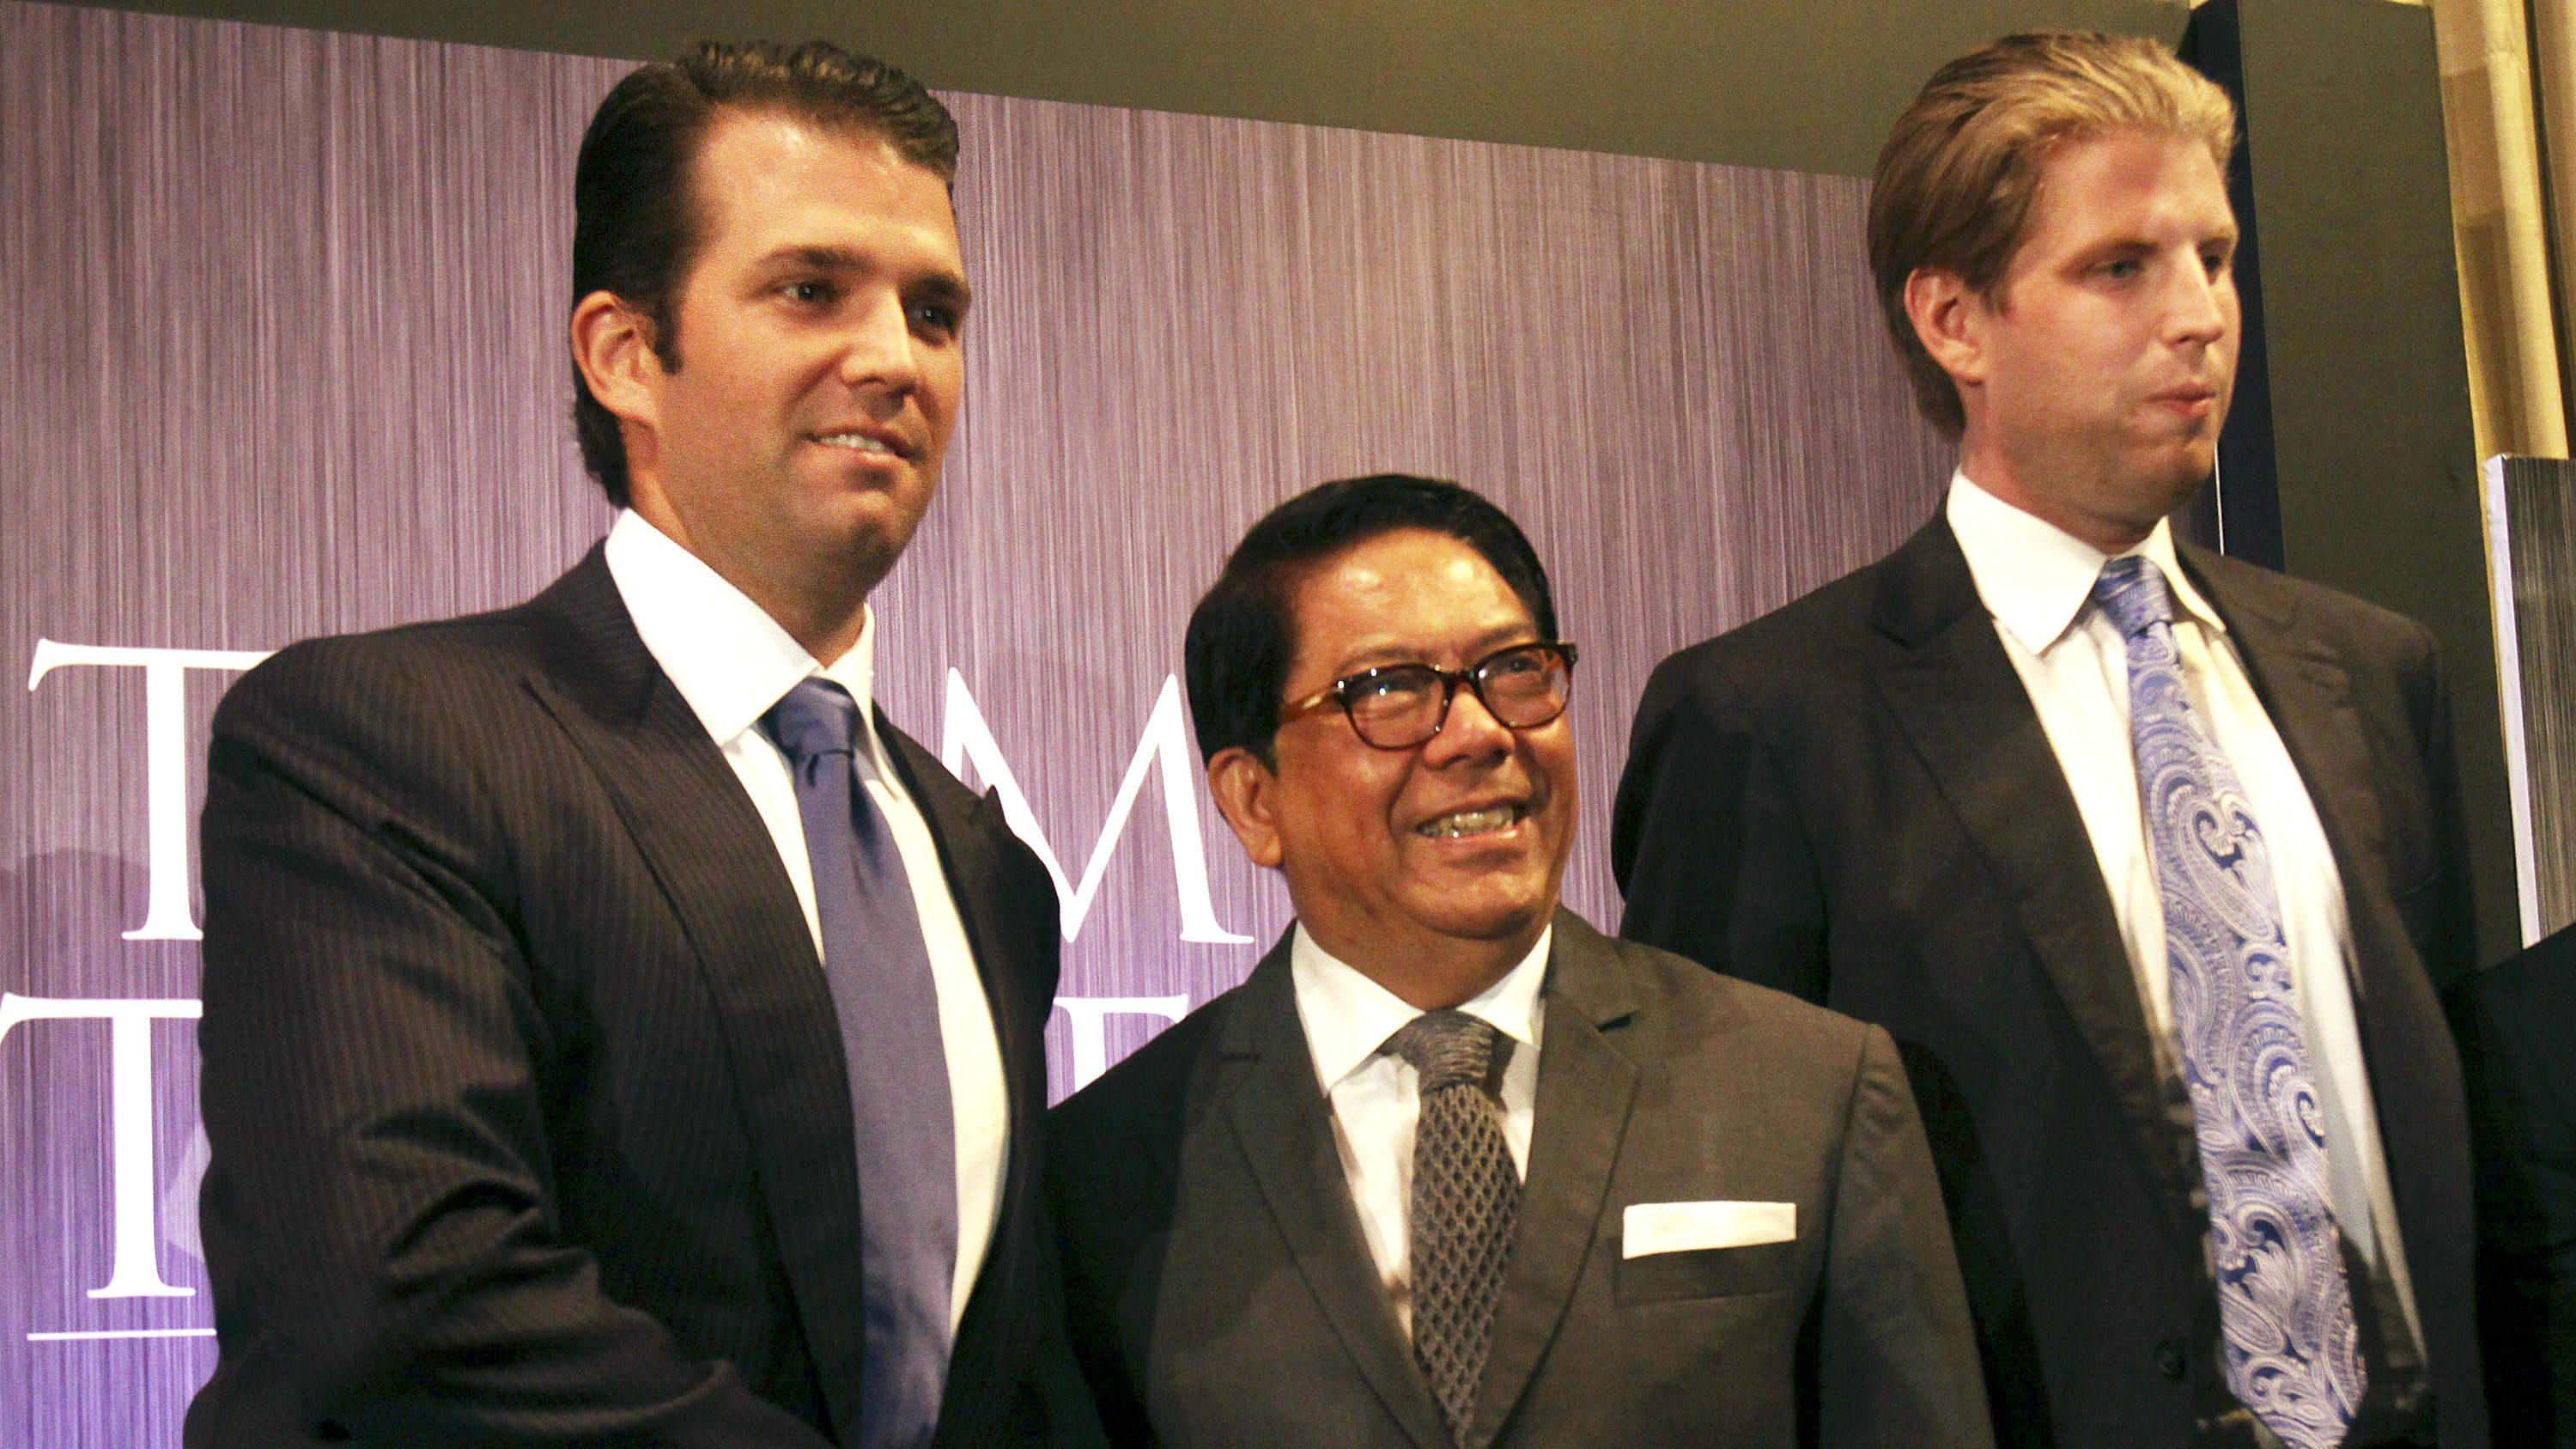 Donald Trump Jr., left, and Eric Trump, right, sons of real estate developer Donald Trump, pose with local developer Jose E. B. Antonio during a press conference on the launching of Manila's Trump Tower project Tuesday, June 26, 2012 in the financial district of Makati, Philippines. The US$150-million, 56-story residential building using the brand name and mark under license from the New York-based Trump will be constructed by a local construction company.